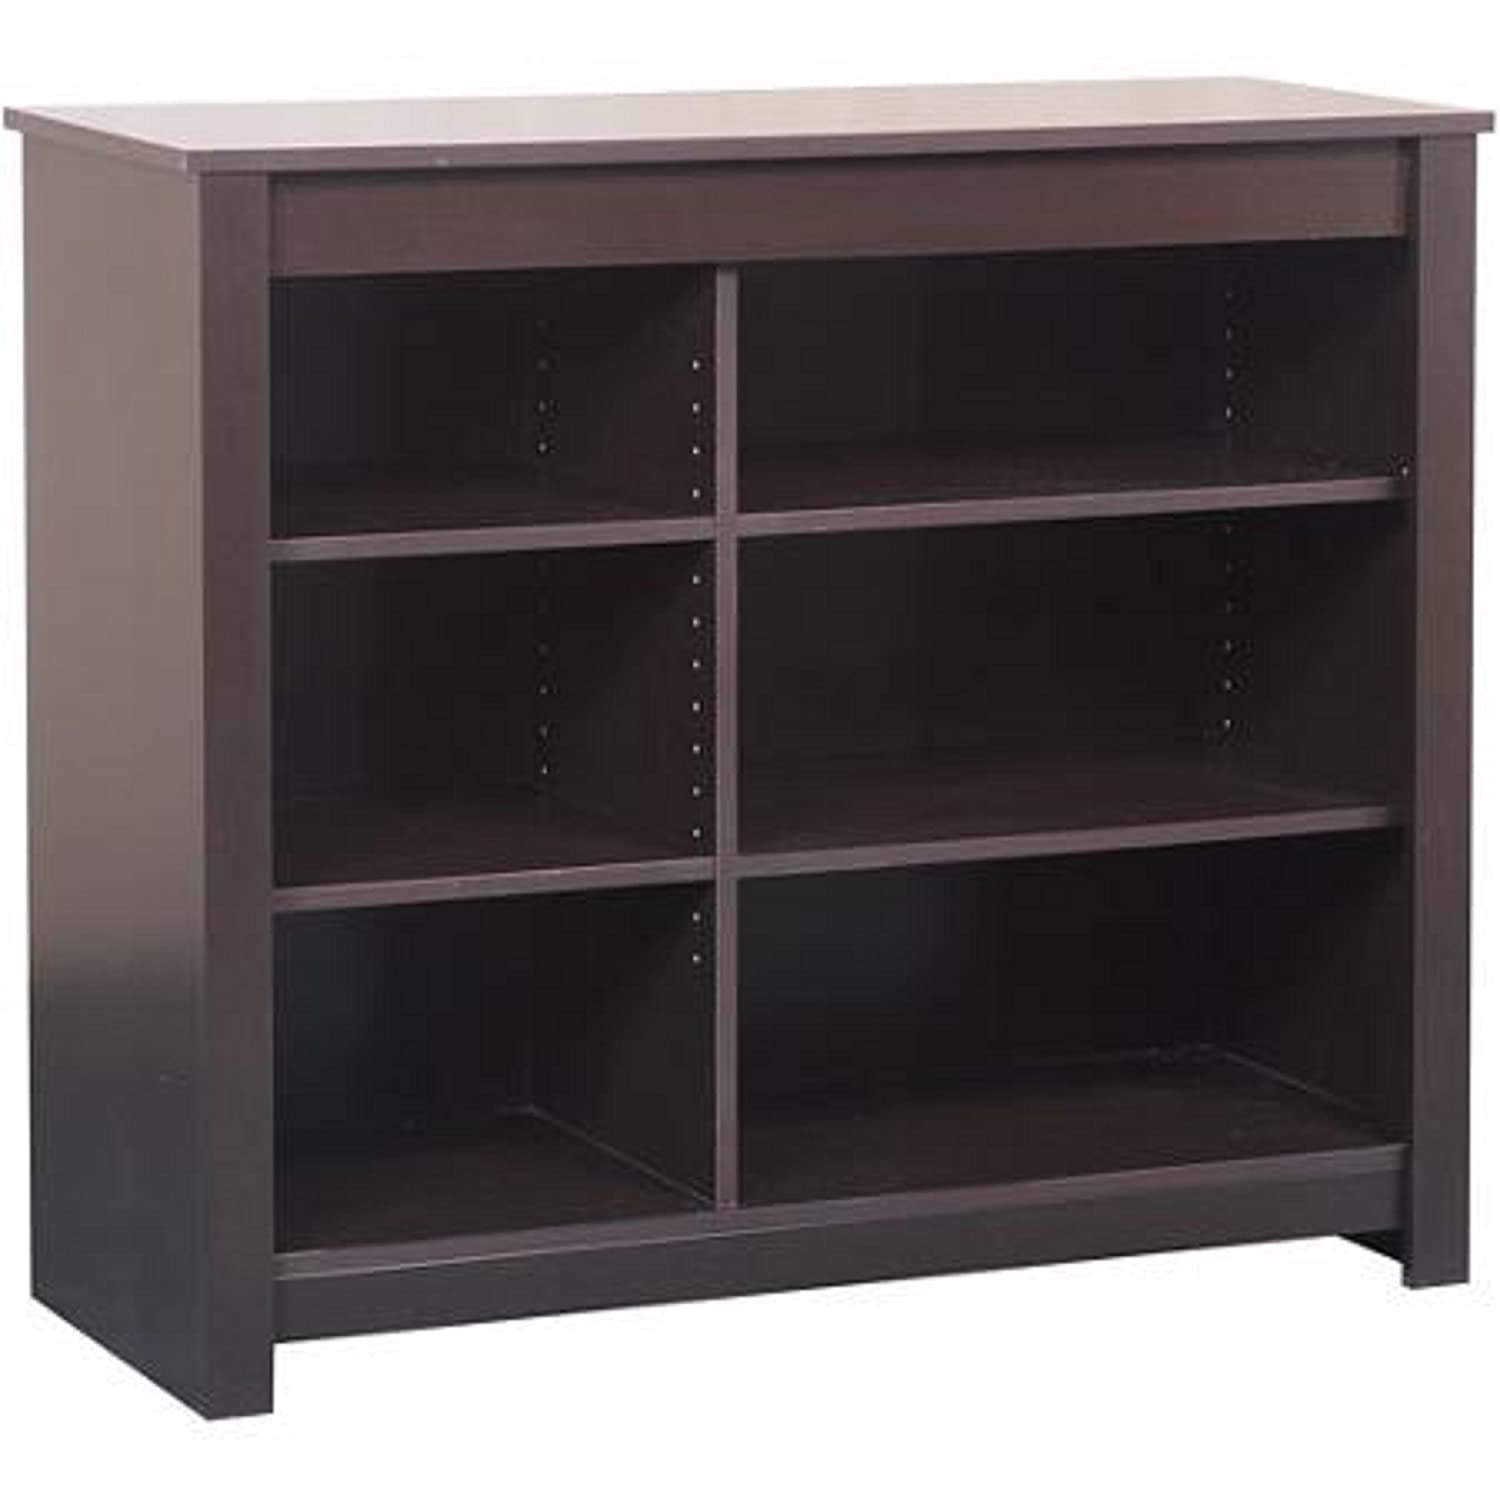 bookcases way shelves callouts shelf products bookcase media storage basics cubby bookshelves and espresso eo bookshelf console dimensions wb